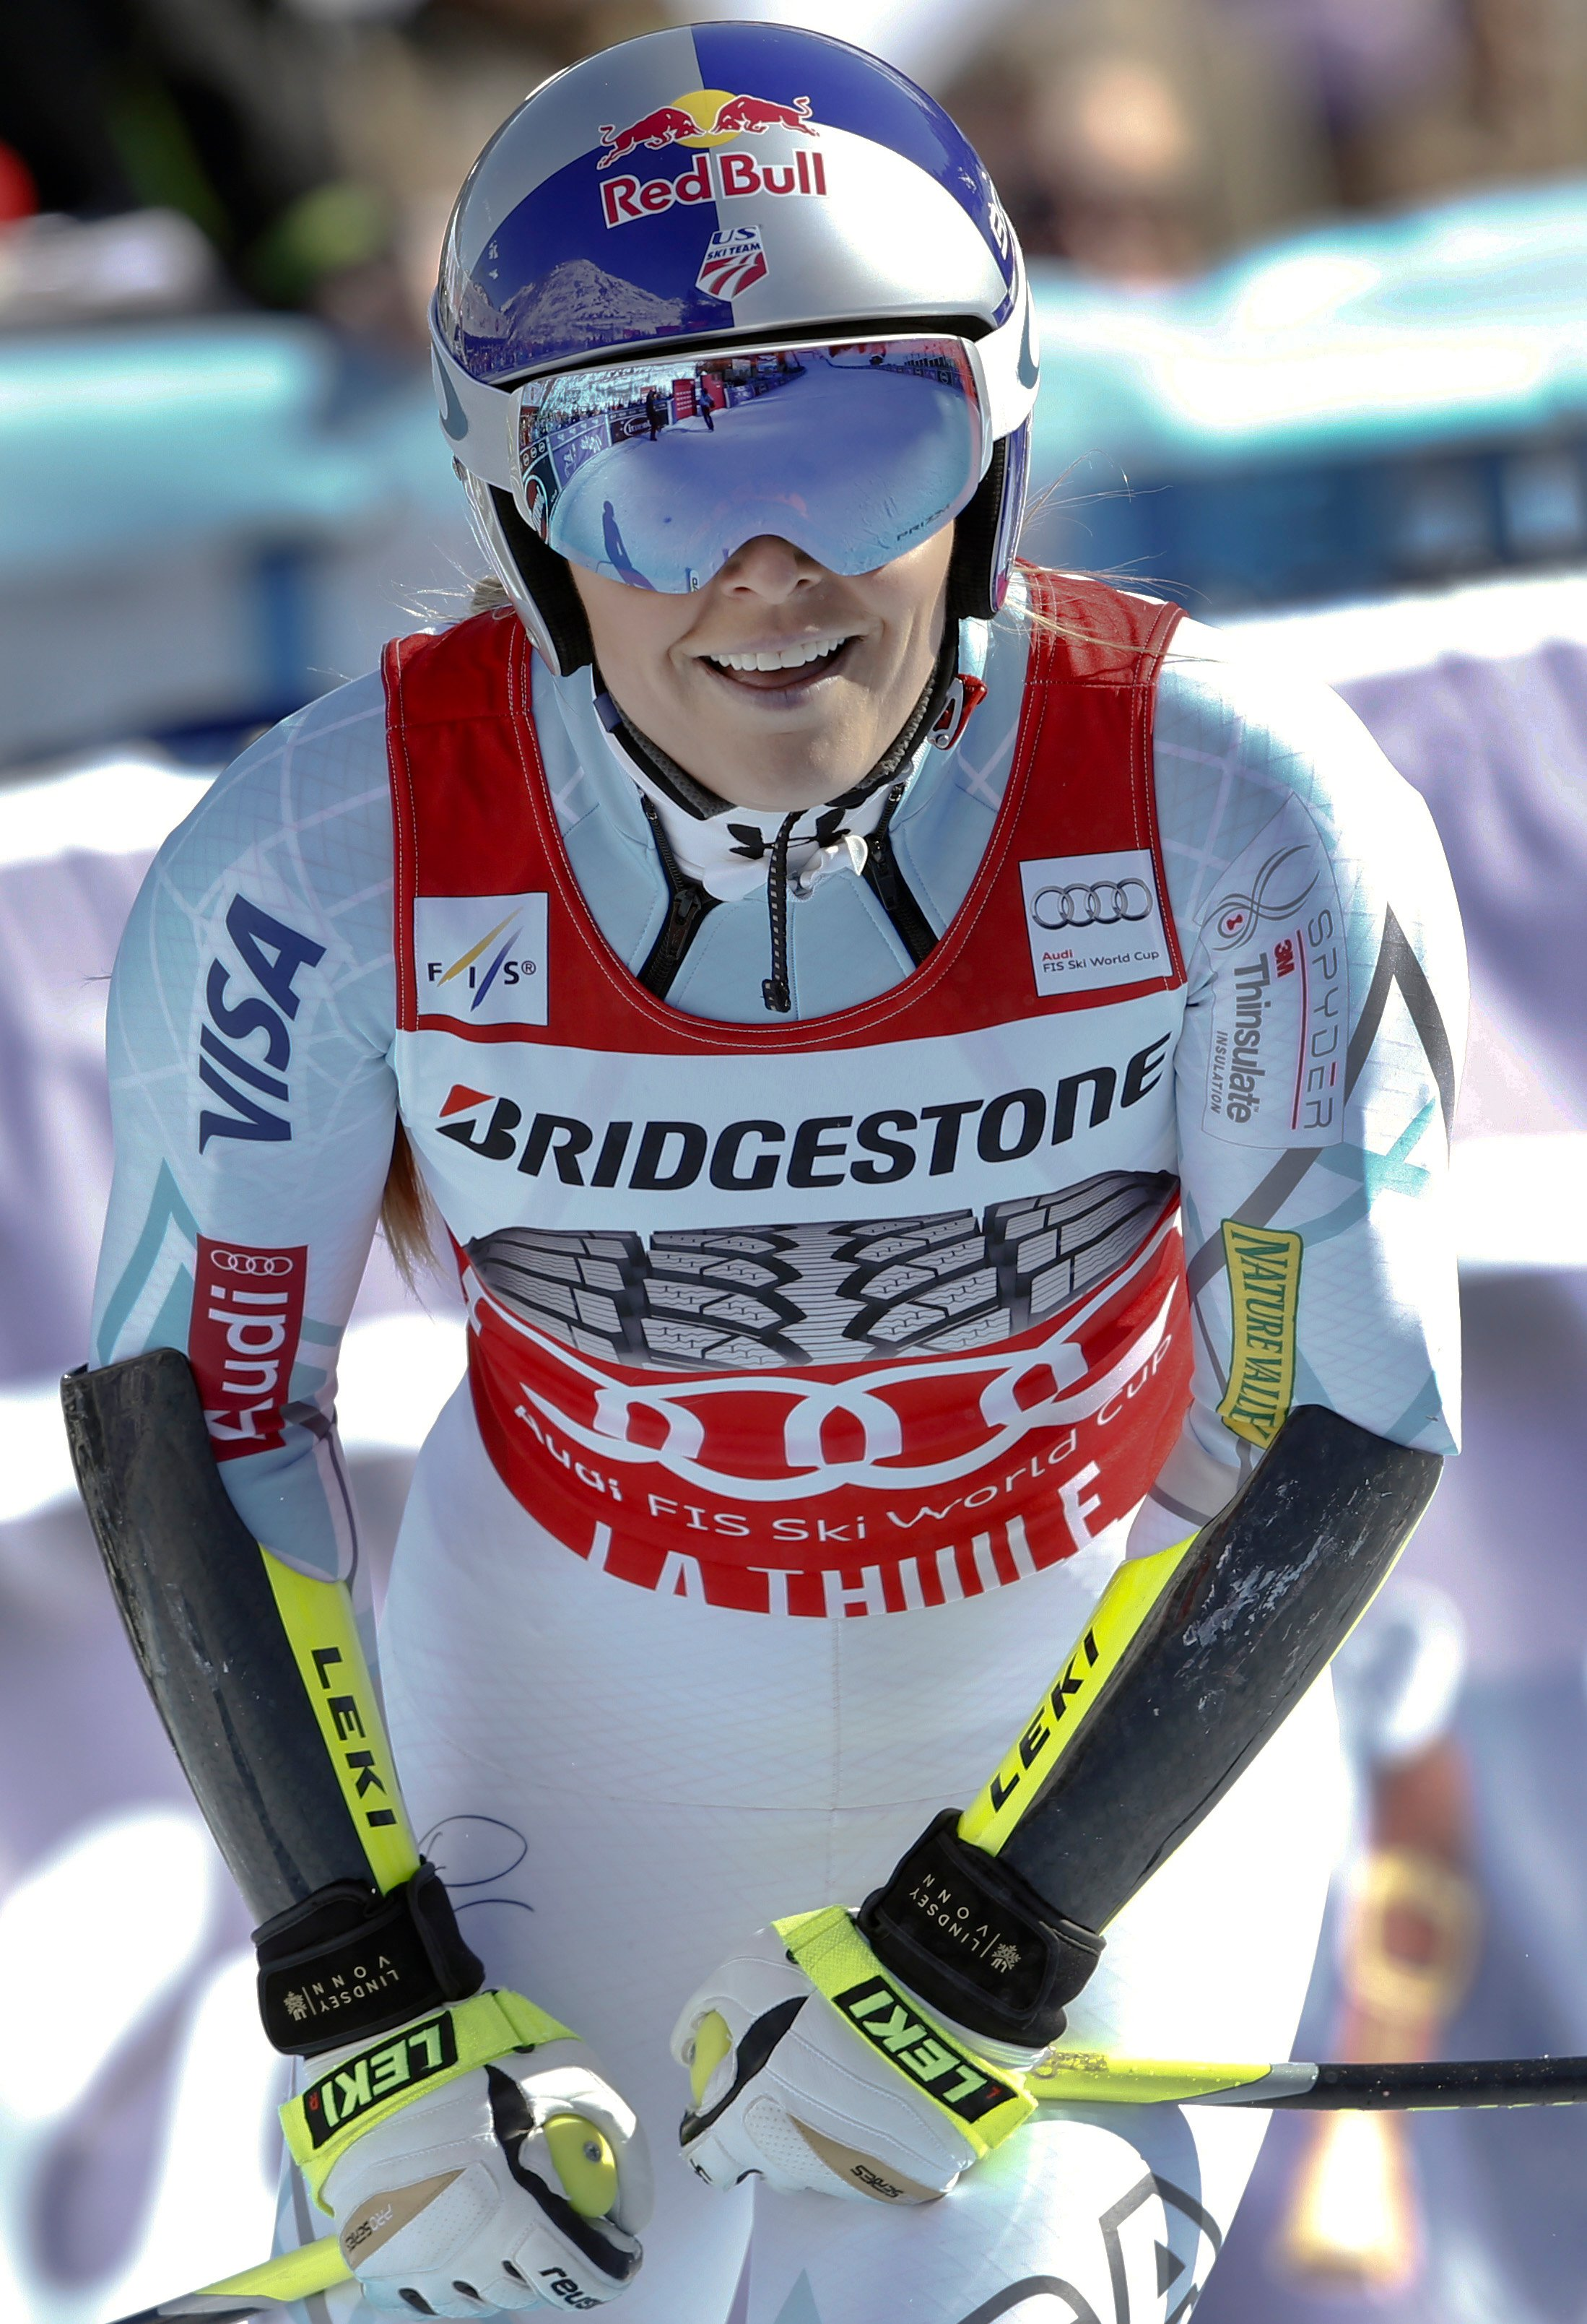 italy_alpine_skiing_world_cup-3a06ea34b6_r5805.jpeg